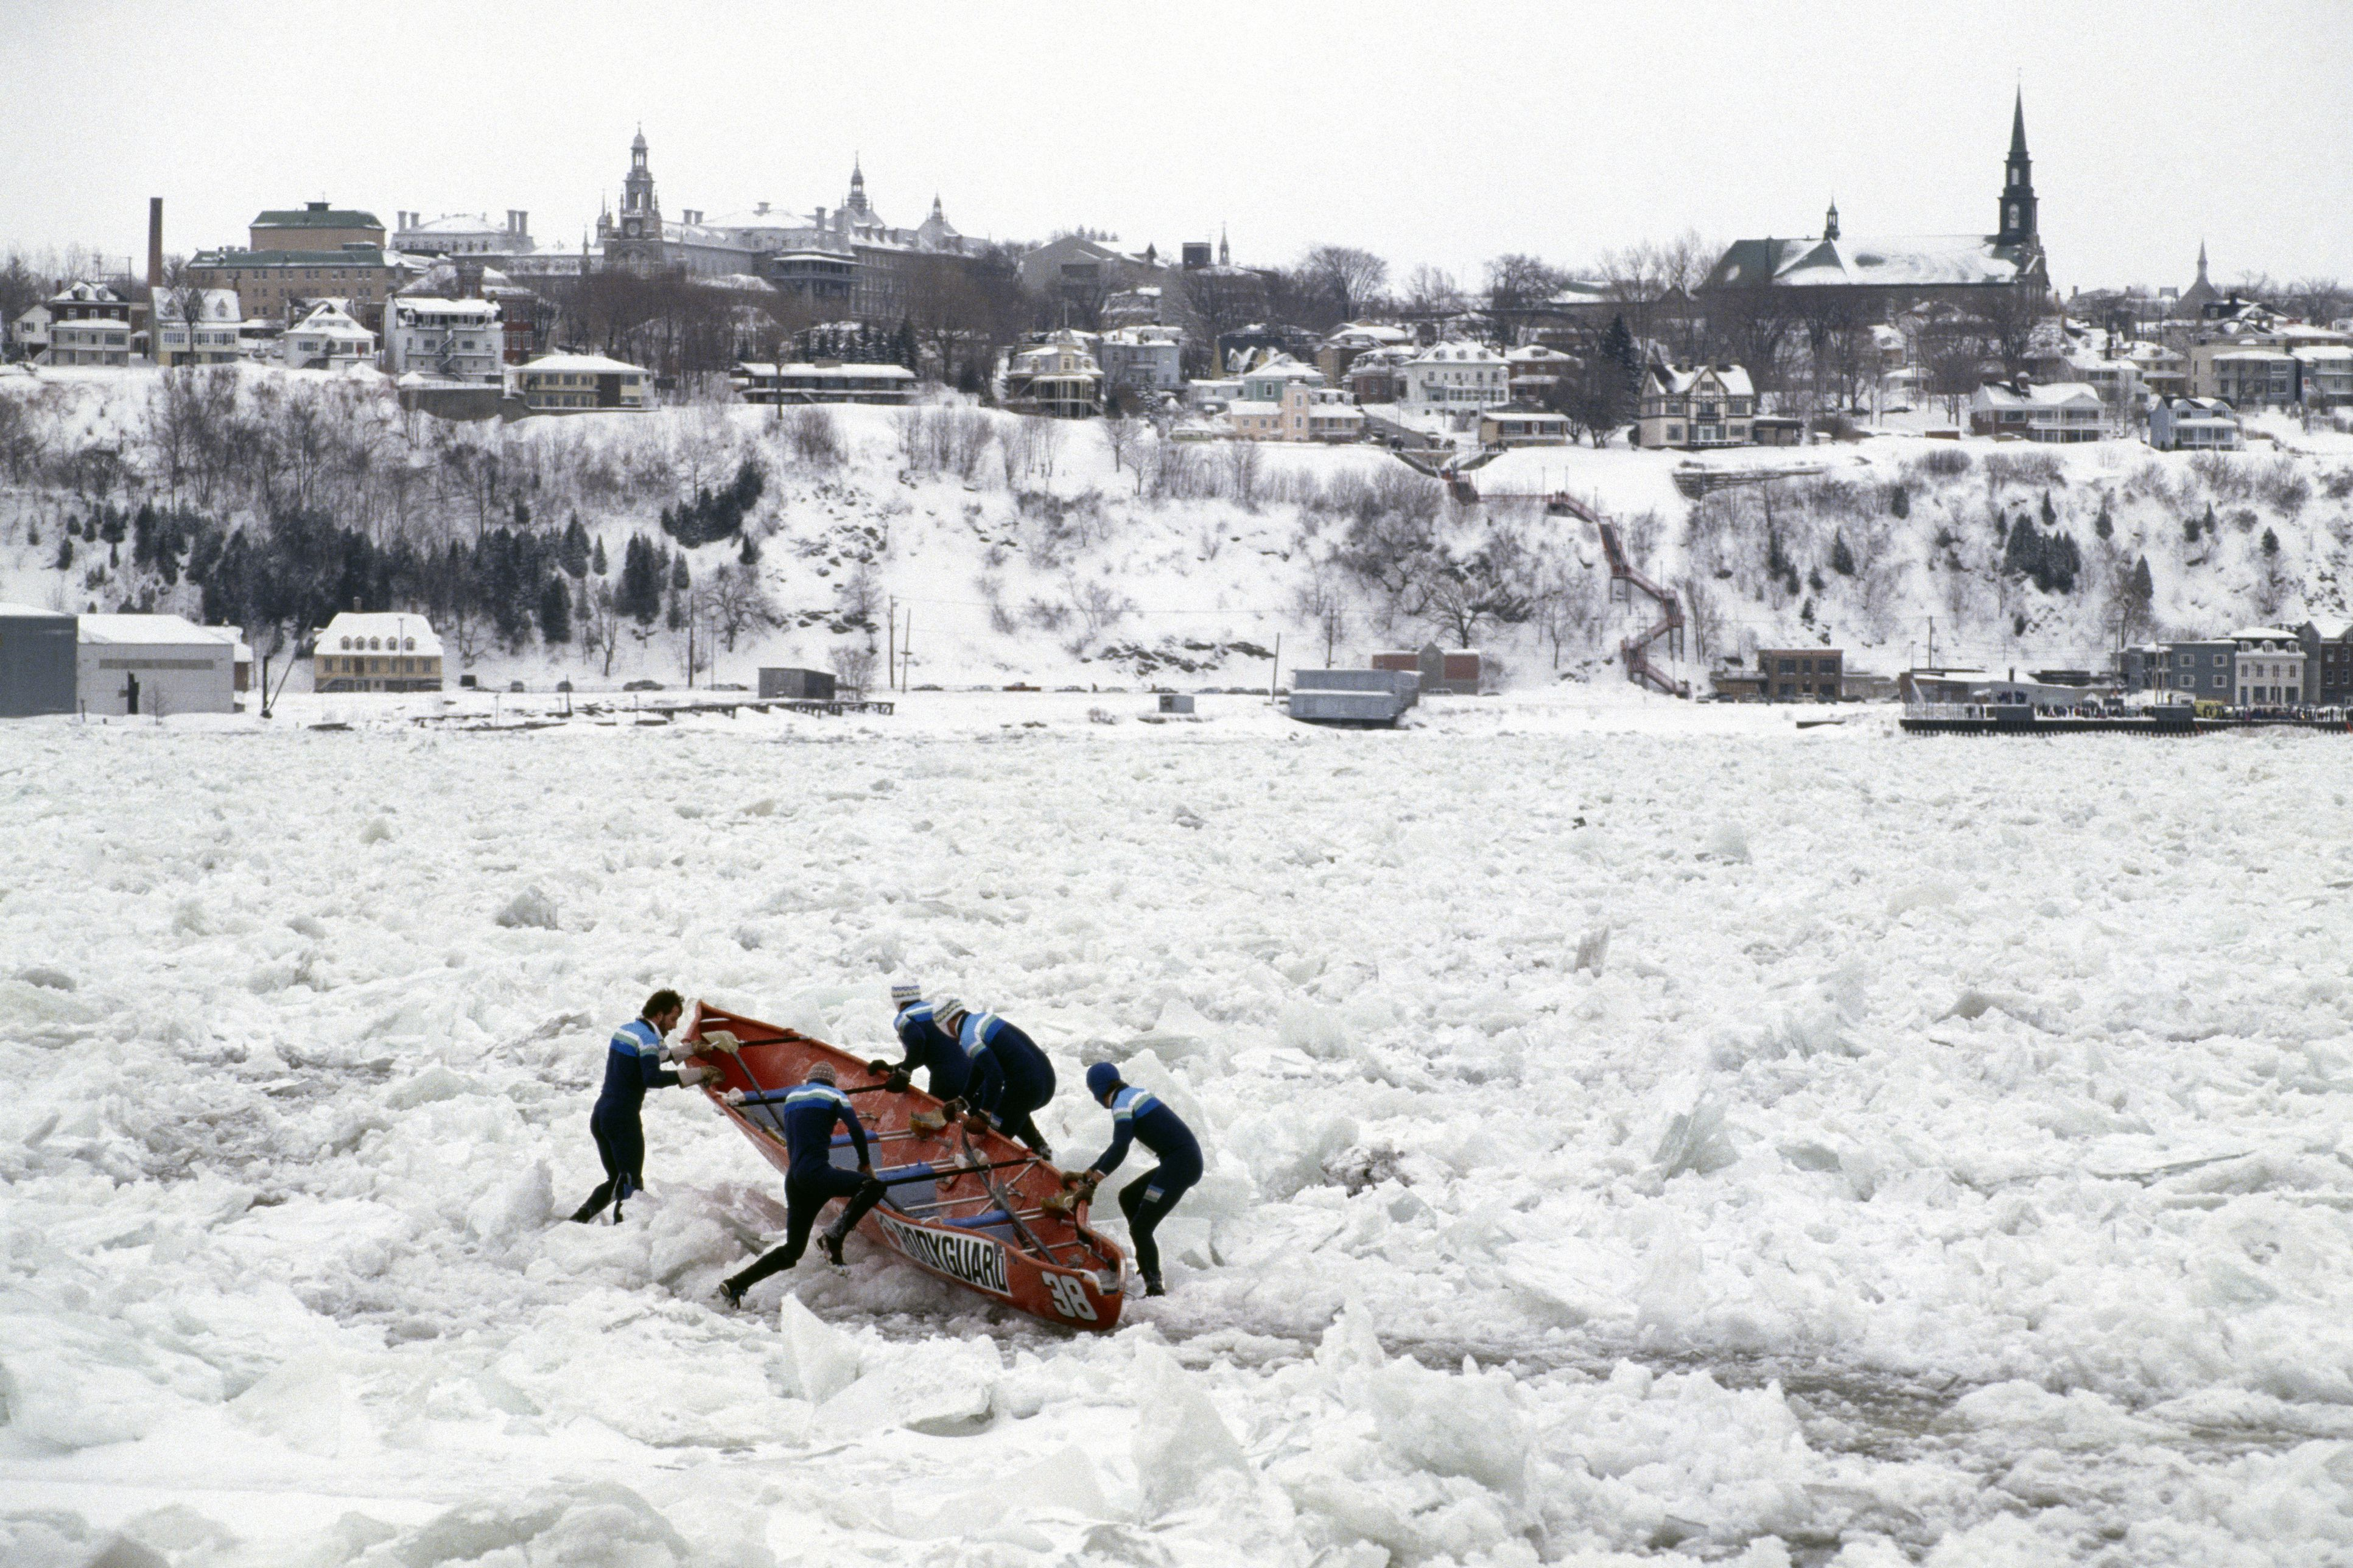 A group of boaters participate in an iced river crossing competition in Quebec city